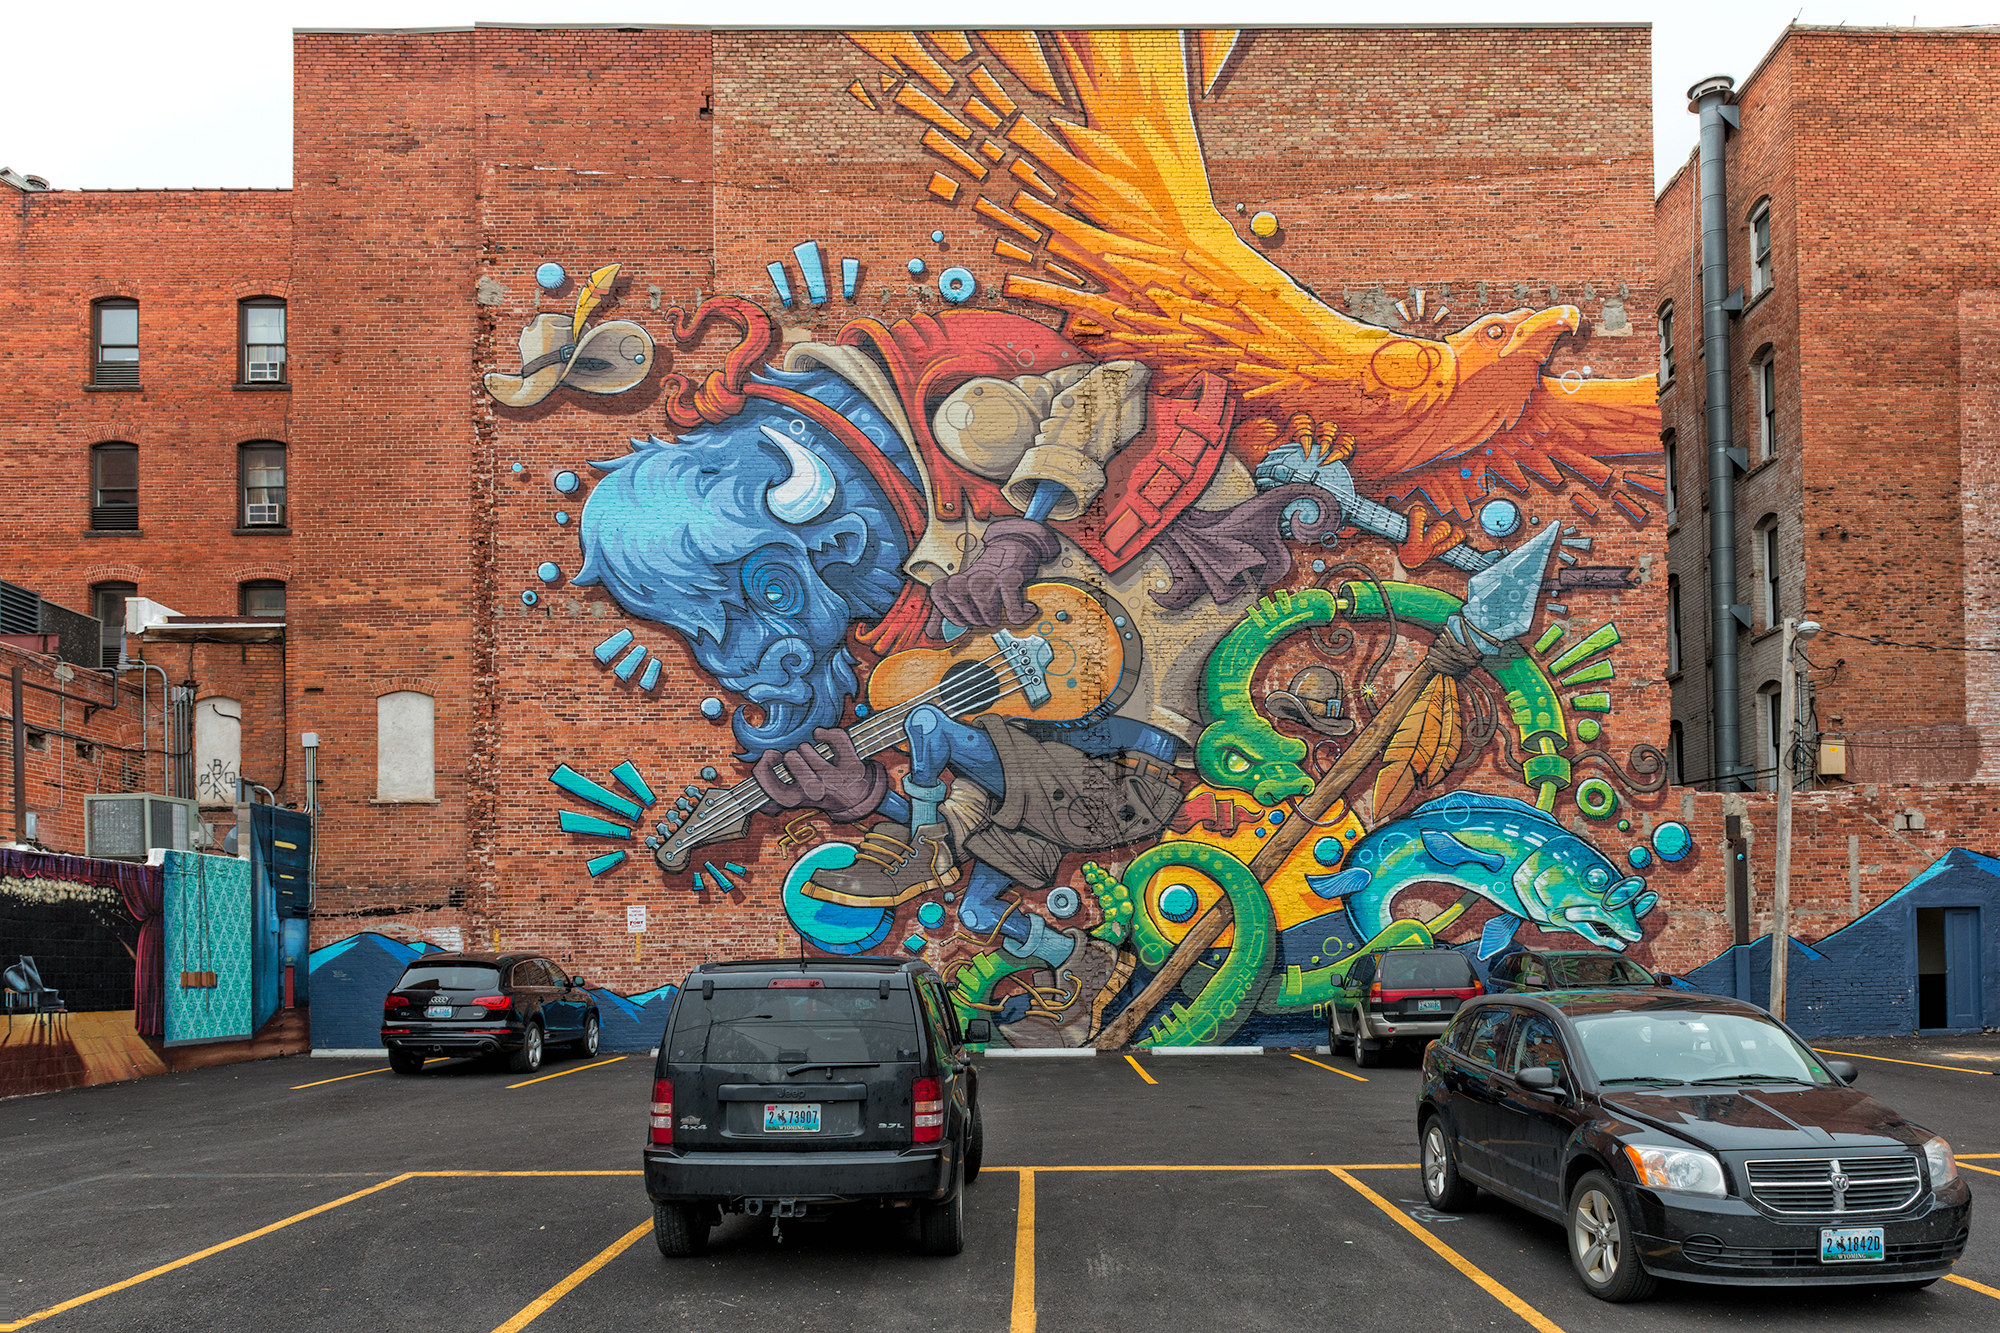 The Buffalo Mural. Cheyenne, Wyoming, 2016